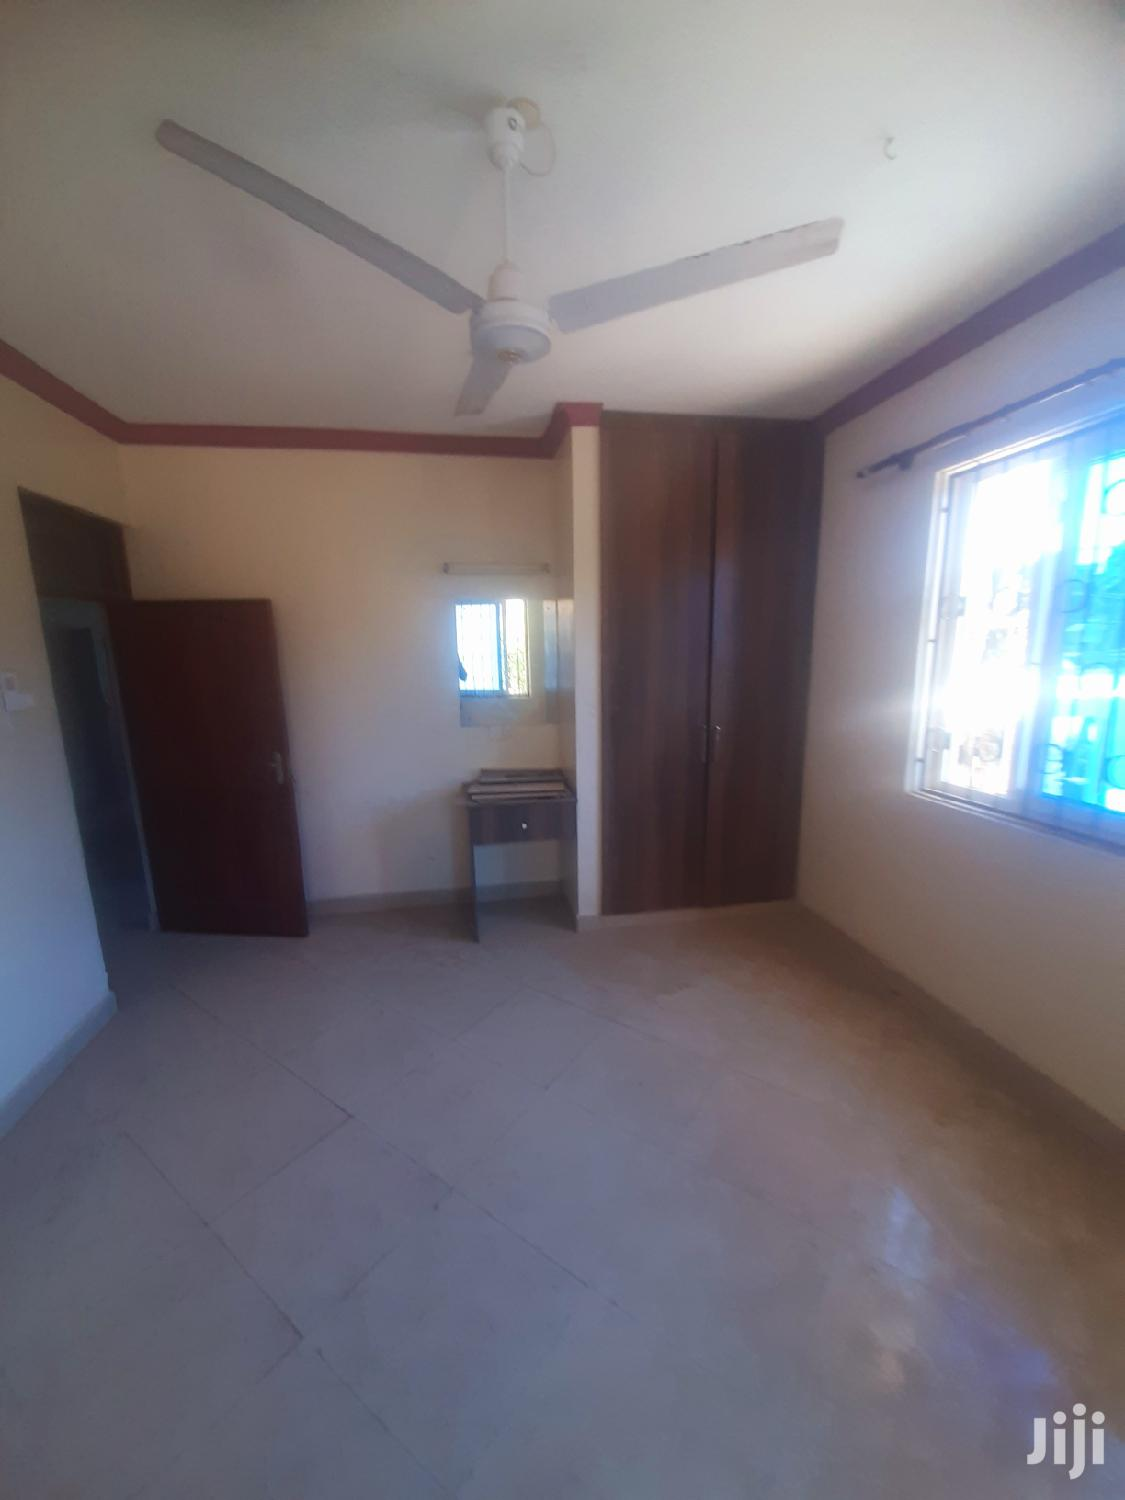 Open Kitchen Plan To Let In Mkomani Cinemax | Houses & Apartments For Rent for sale in Nyali, Mombasa, Kenya